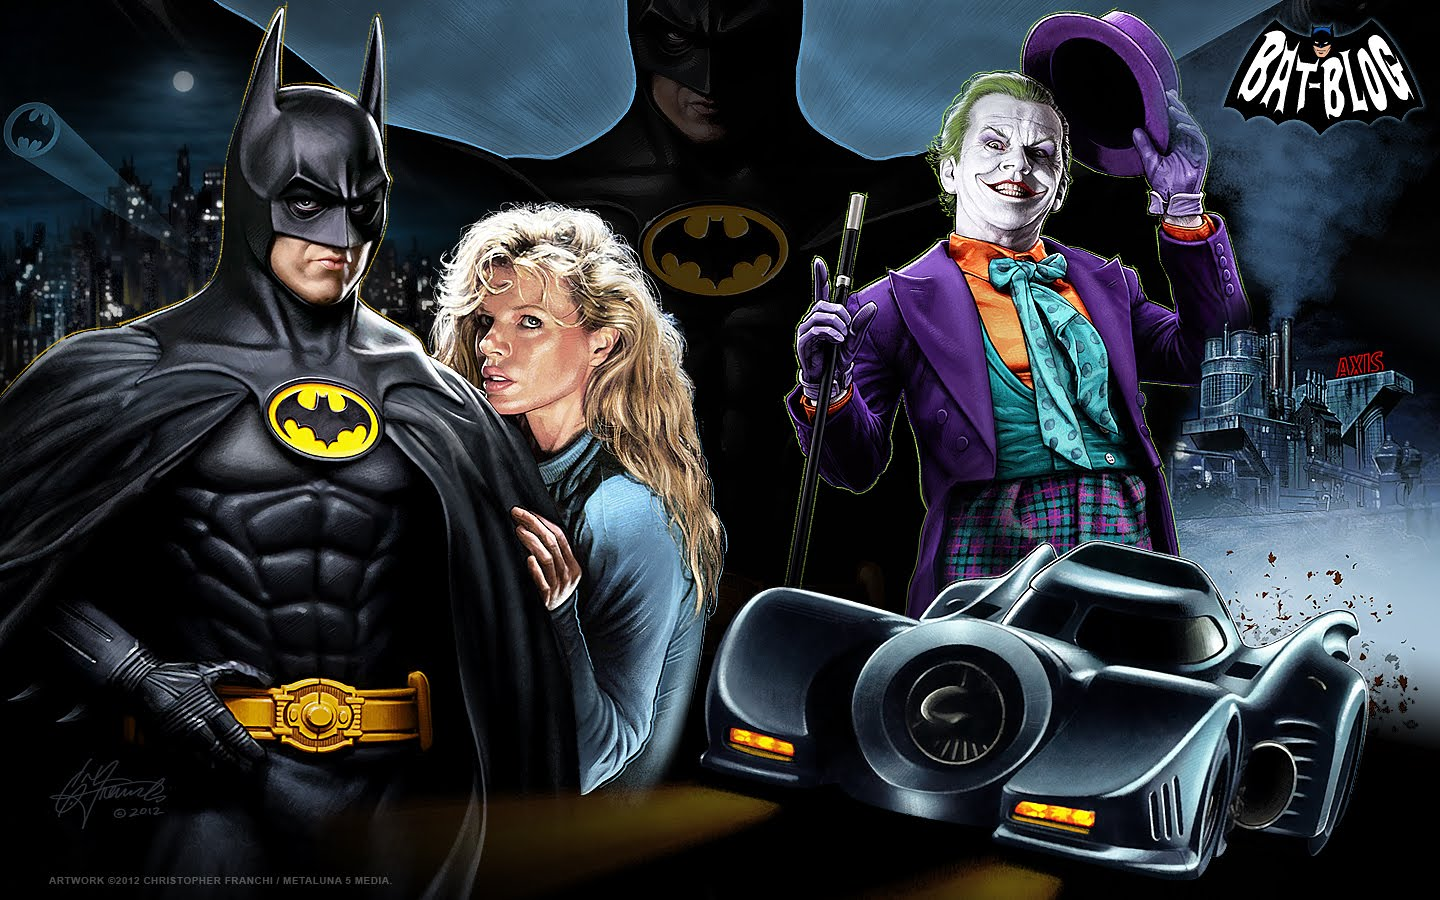 http://4.bp.blogspot.com/-lQKuBTFBtPc/T2n2_21llnI/AAAAAAAATNQ/hv1G-cxiTP0/s1600/1989-Batman-Movie-Wallpaper-1.jpg